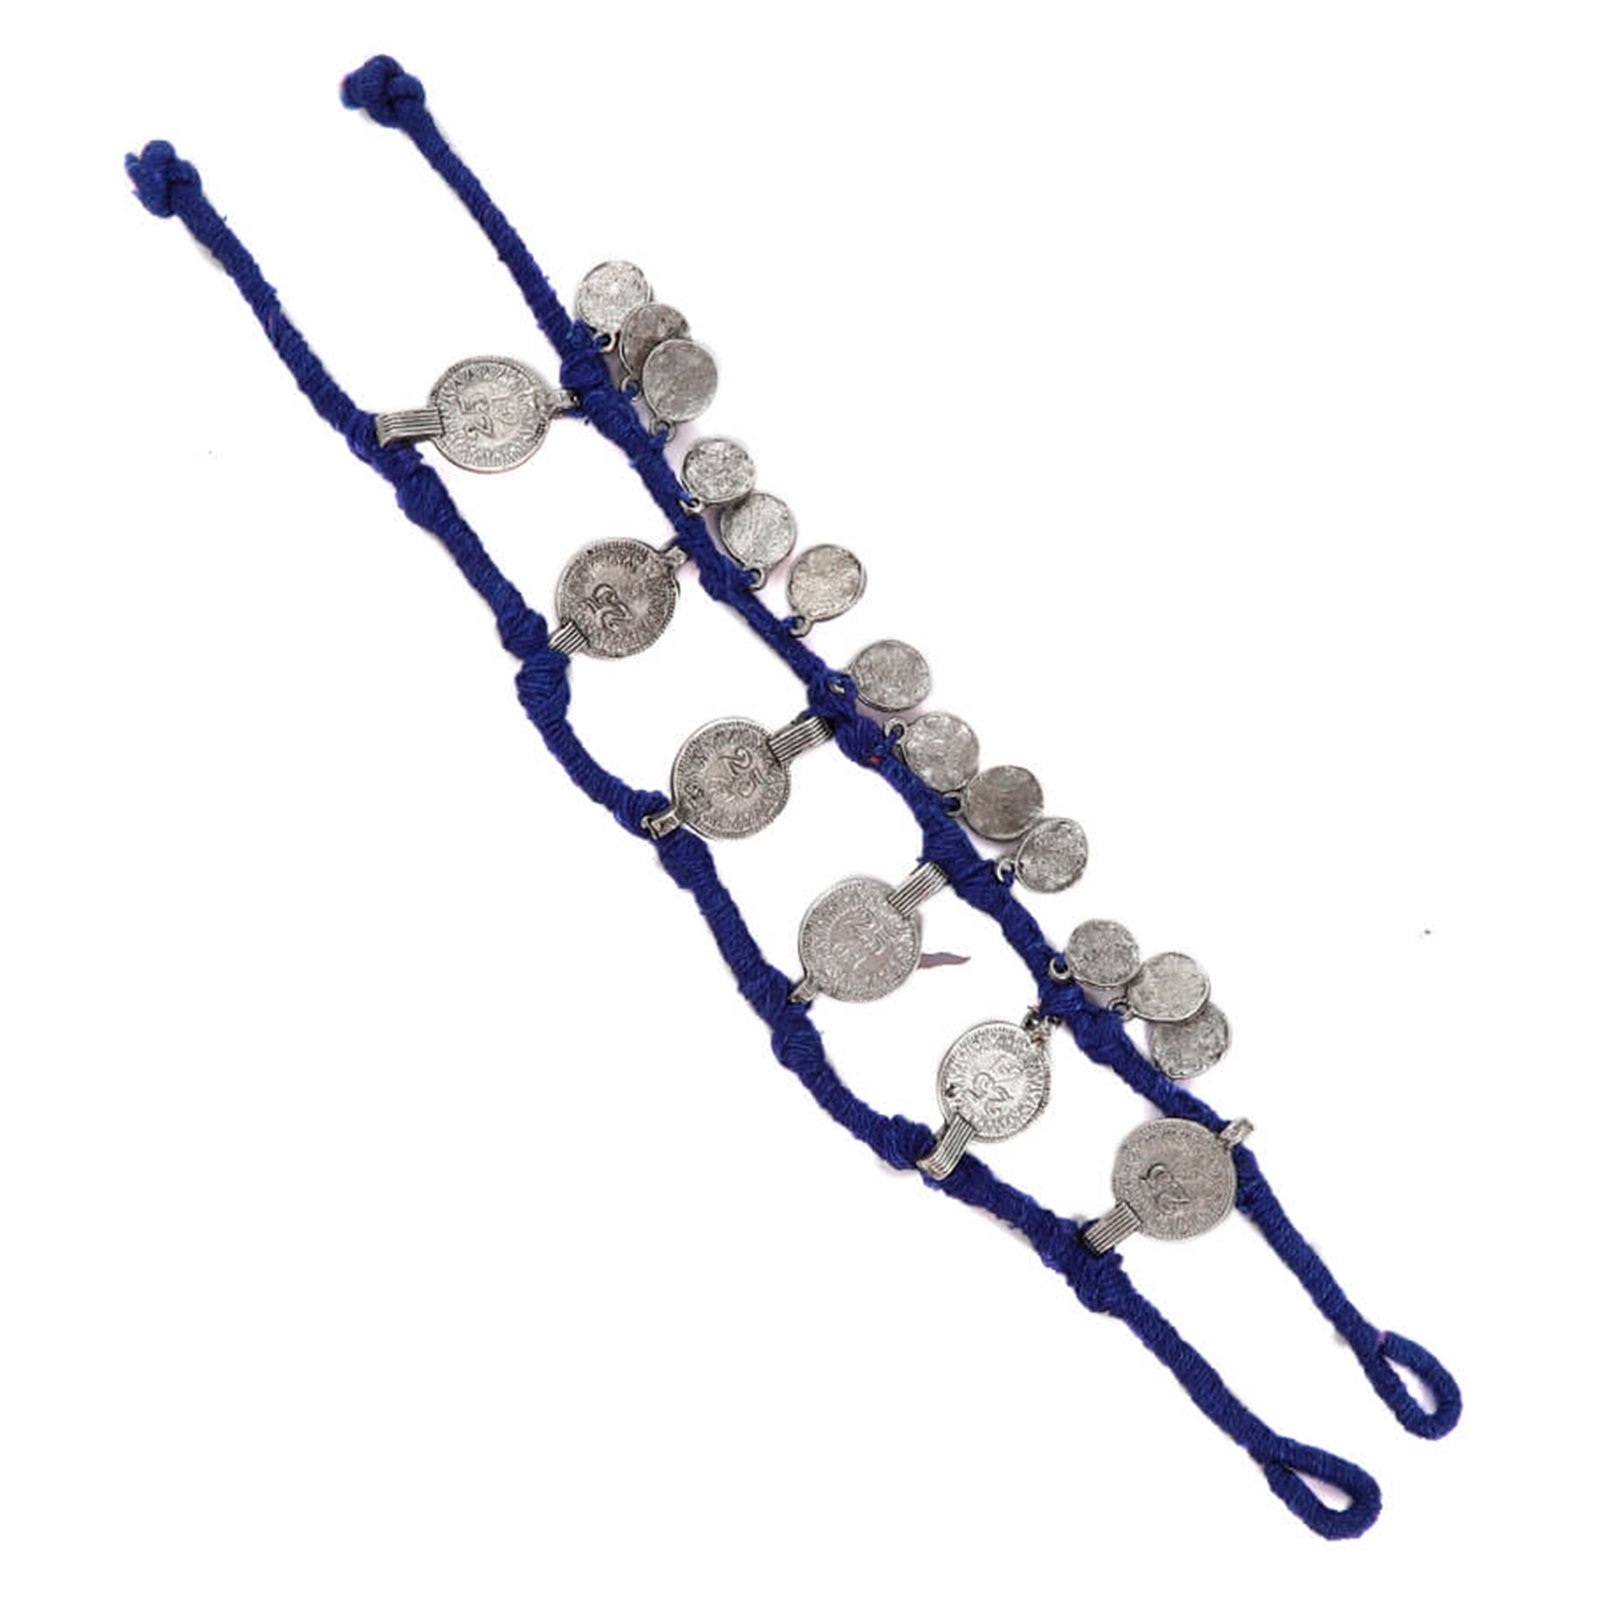 Tjori Anklet with German Silver Trinkets Handcrafted in Navy Blue Threads by Tjori